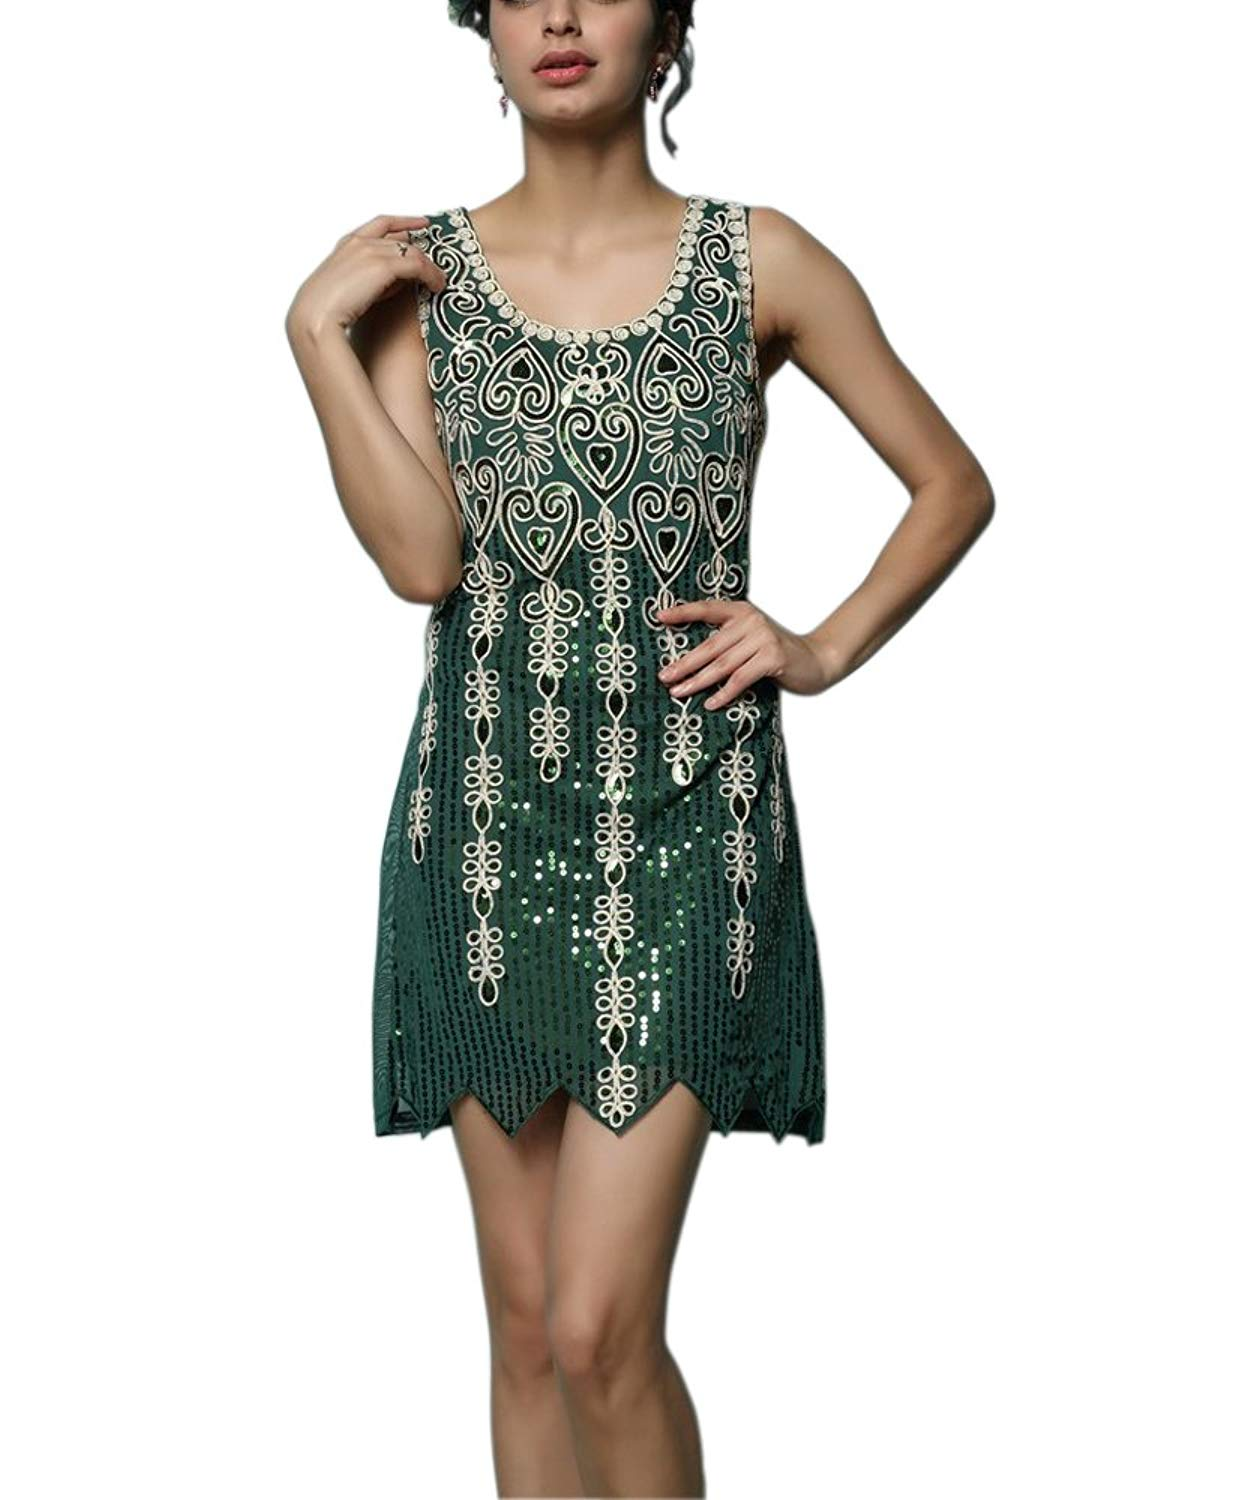 7a57990ac14 Get Quotations · Whitewed Embroideried Sequin Gatsby Flapper Inspired Style  Prom Dresses Costume